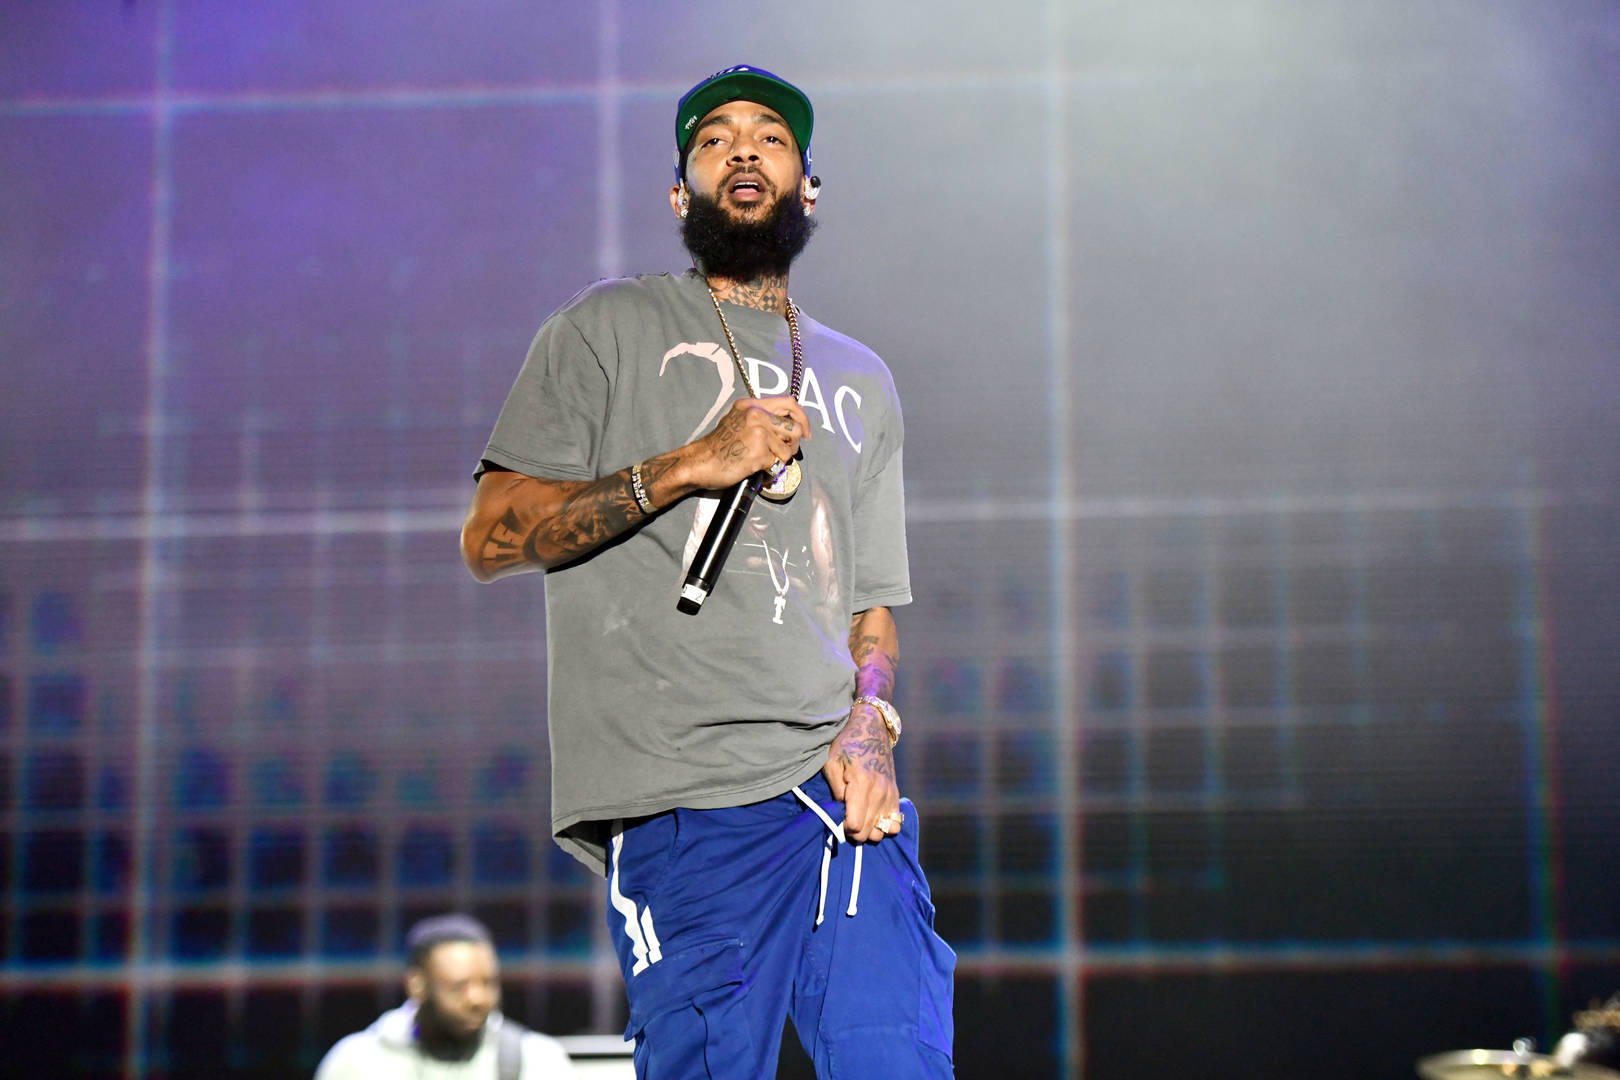 Memorial held in Miami for slain rapper Nipsey Hussle